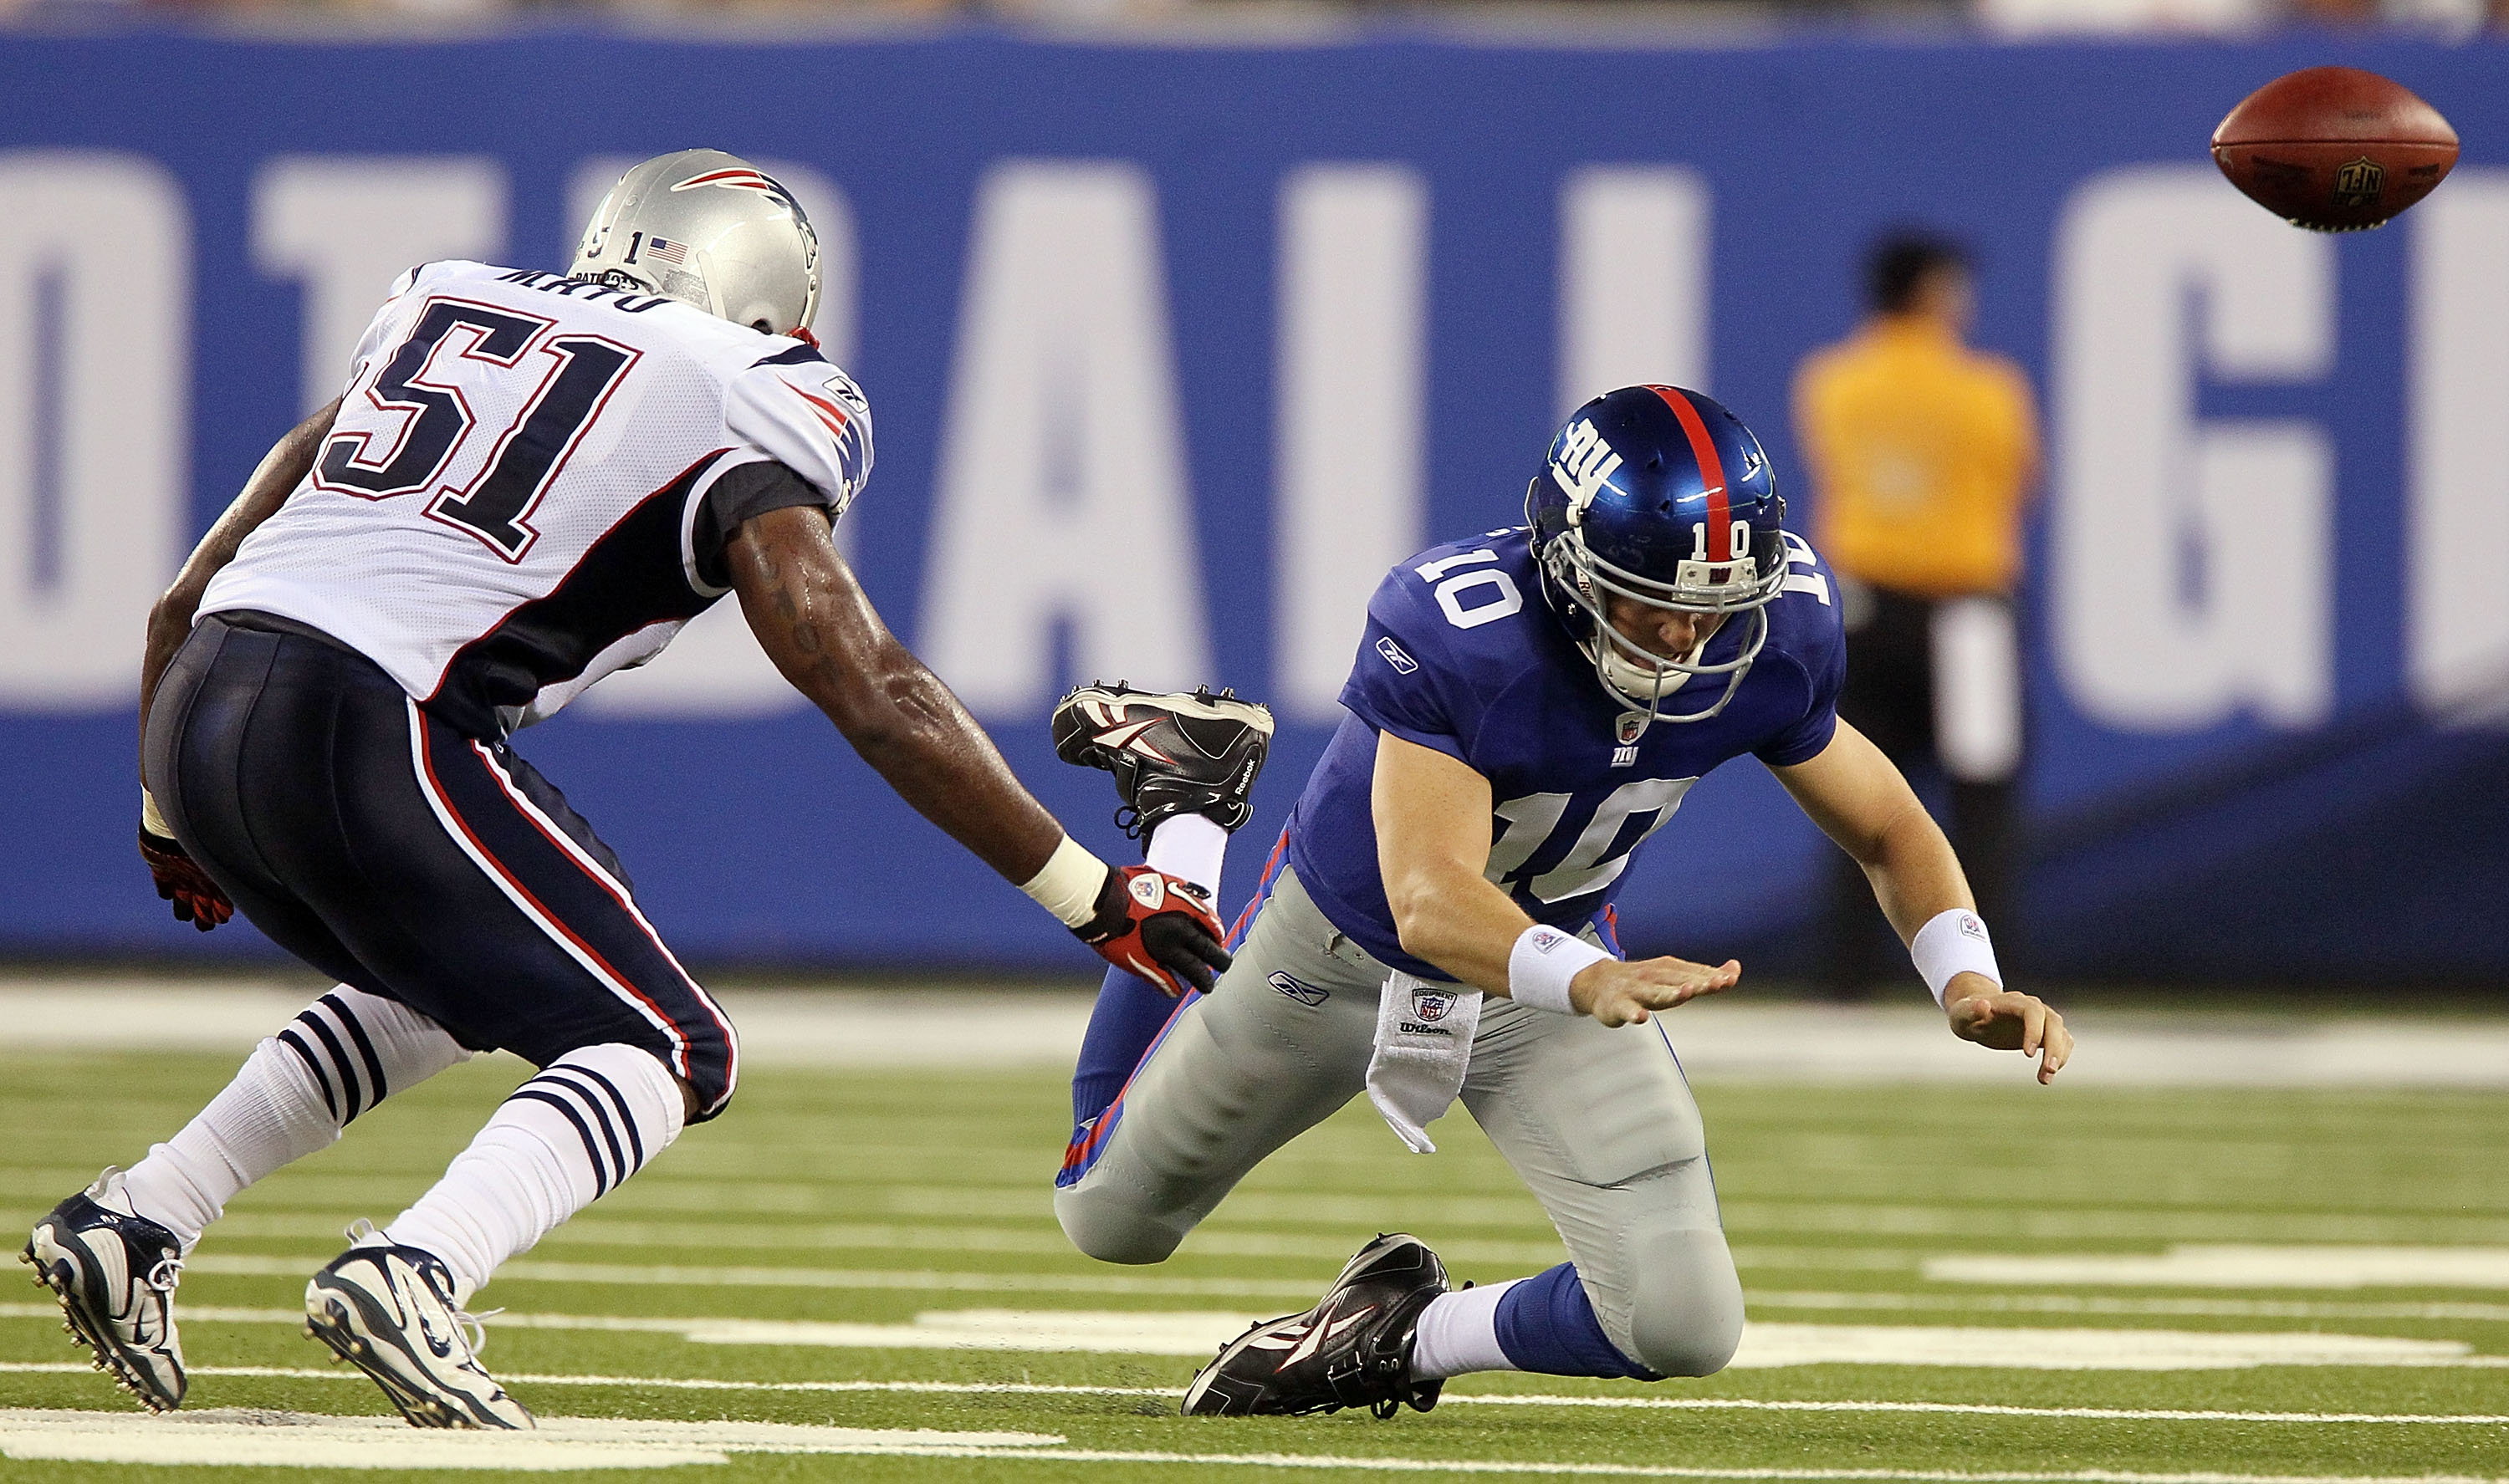 EAST RUTHERFORD, NJ - SEPTEMBER 02:  Eli Manning #10 of the New York Giants fumbles the ball in the first quarter as he is pressured by Jerod Mayo #51 of the New England Patriots on September 2, 2010 at the New Meadowlands Stadium in East Rutherford, New